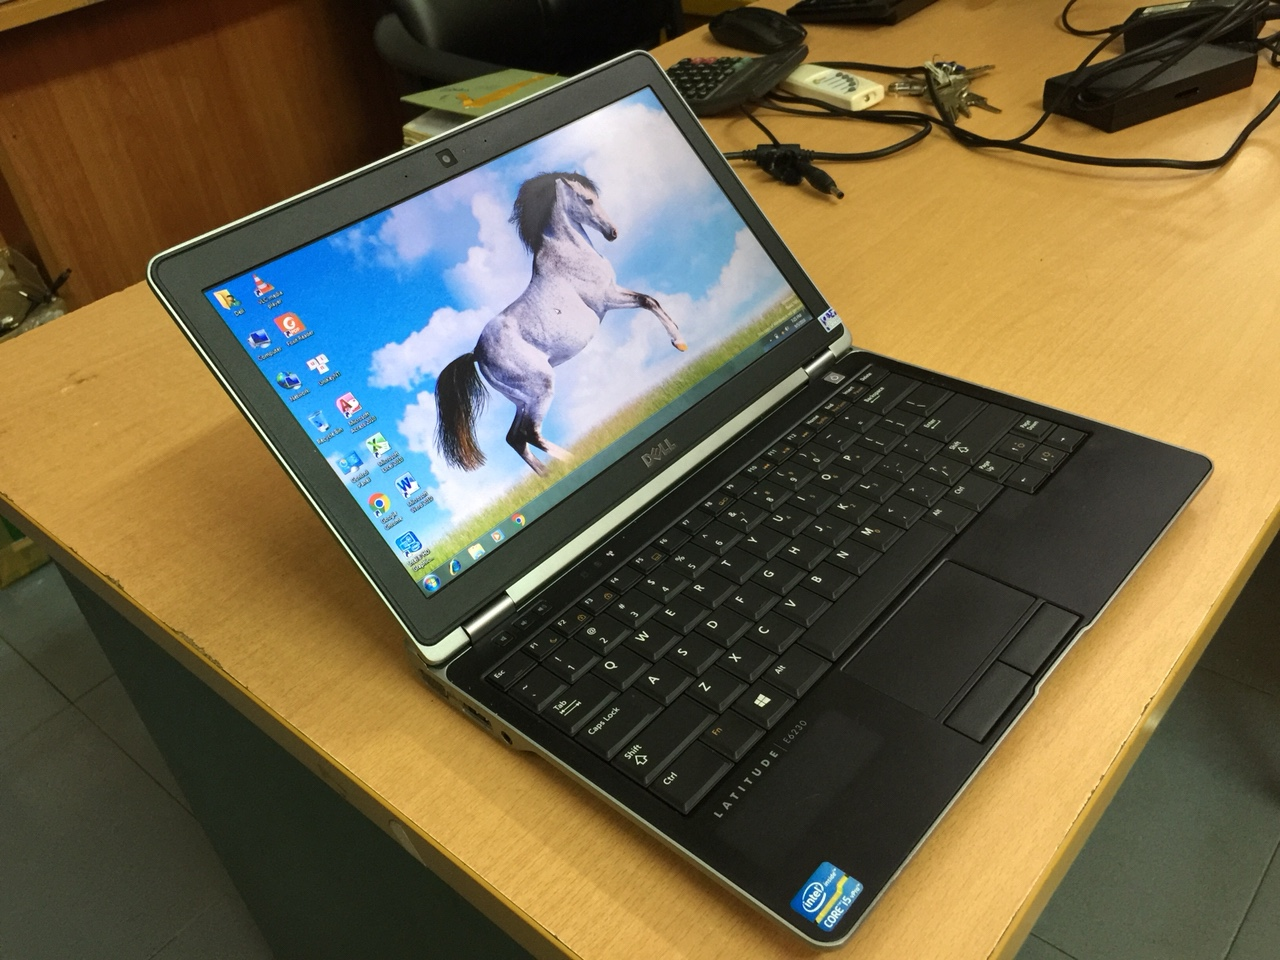 DELL LATITUDE E6230 i5 3320M 4GB 320GB 12.5